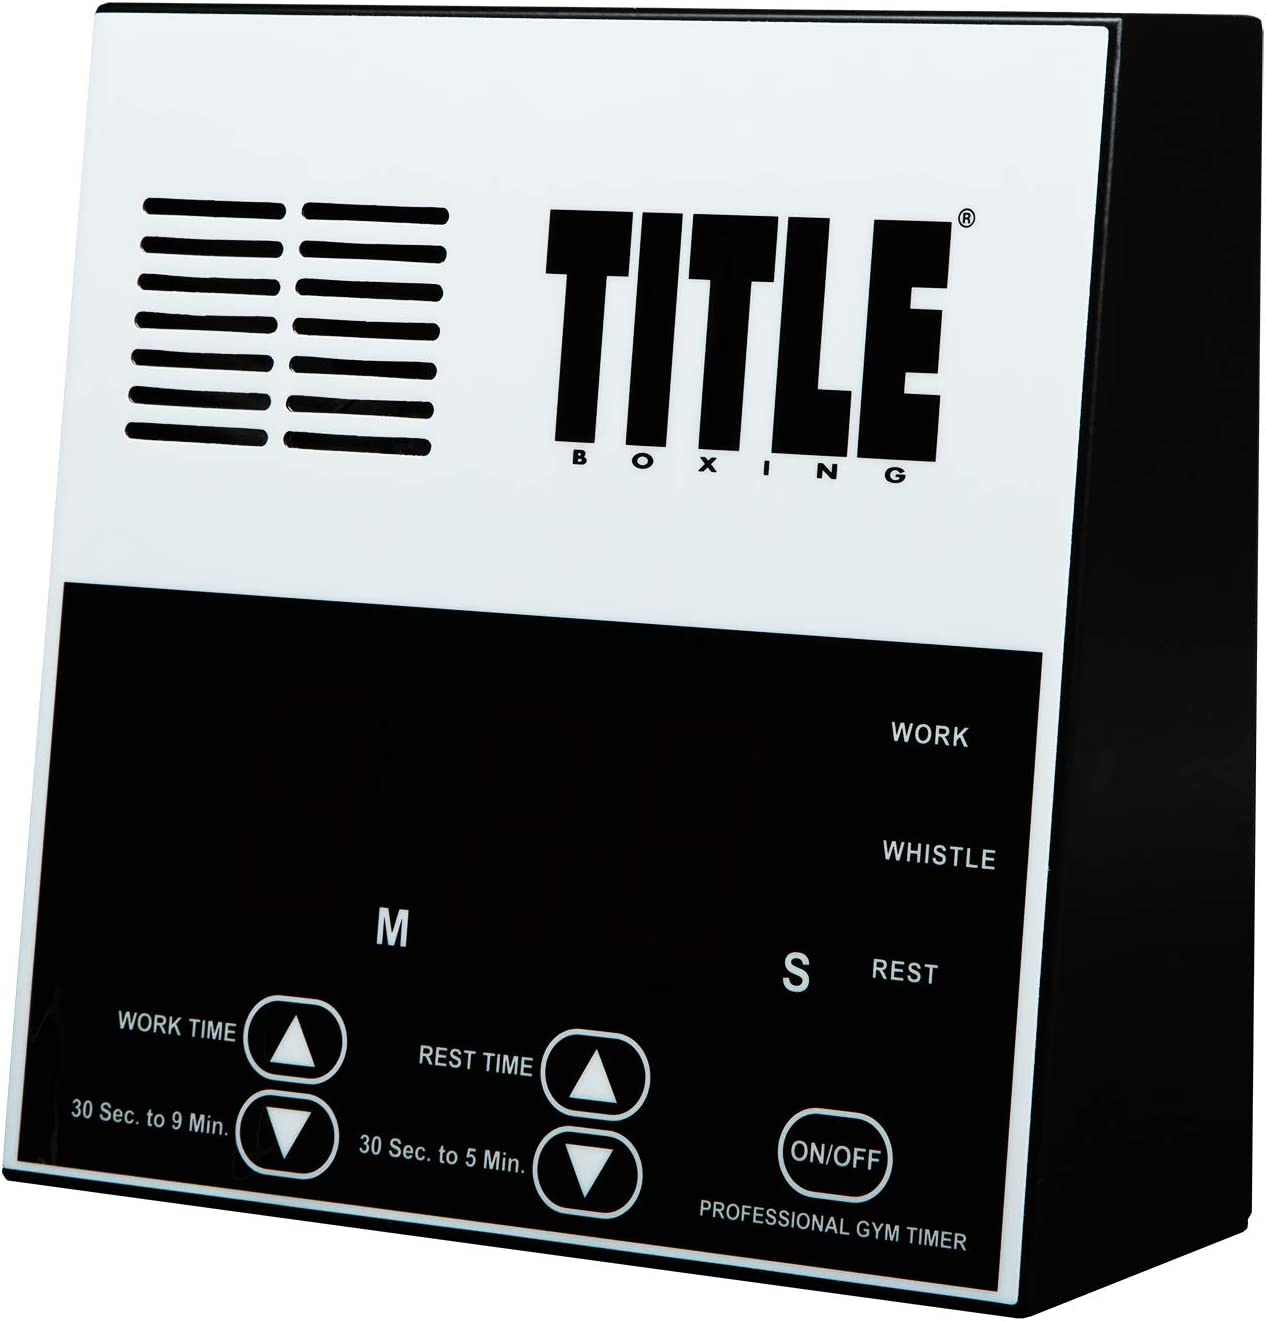 TITLE Boxing Pro Digital Gym Timer : Boxing Ring Parts And Accessories : Sports & Outdoors